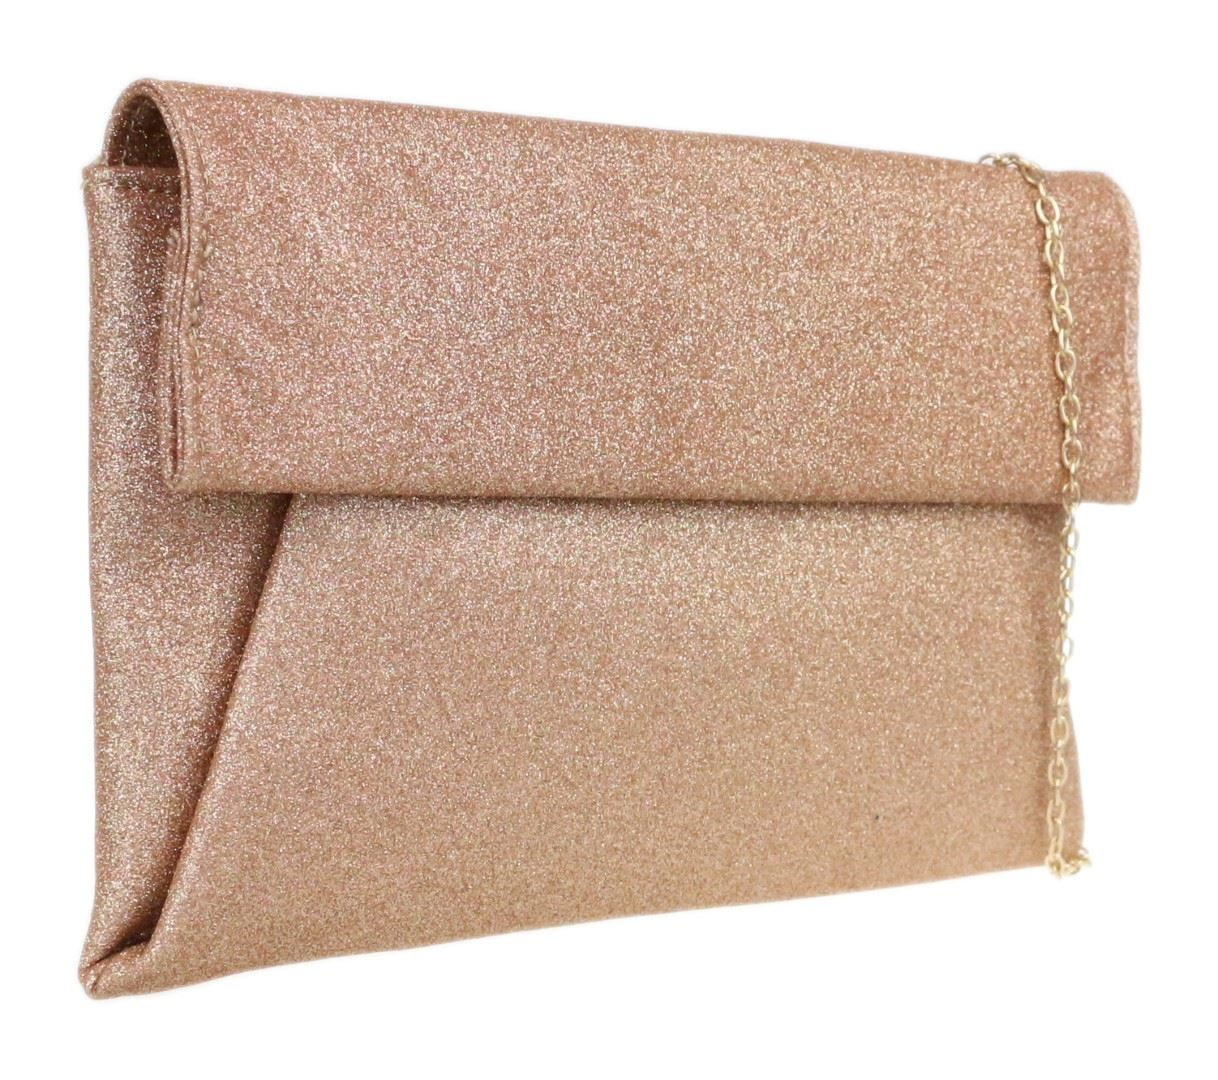 rose gold clutch bag